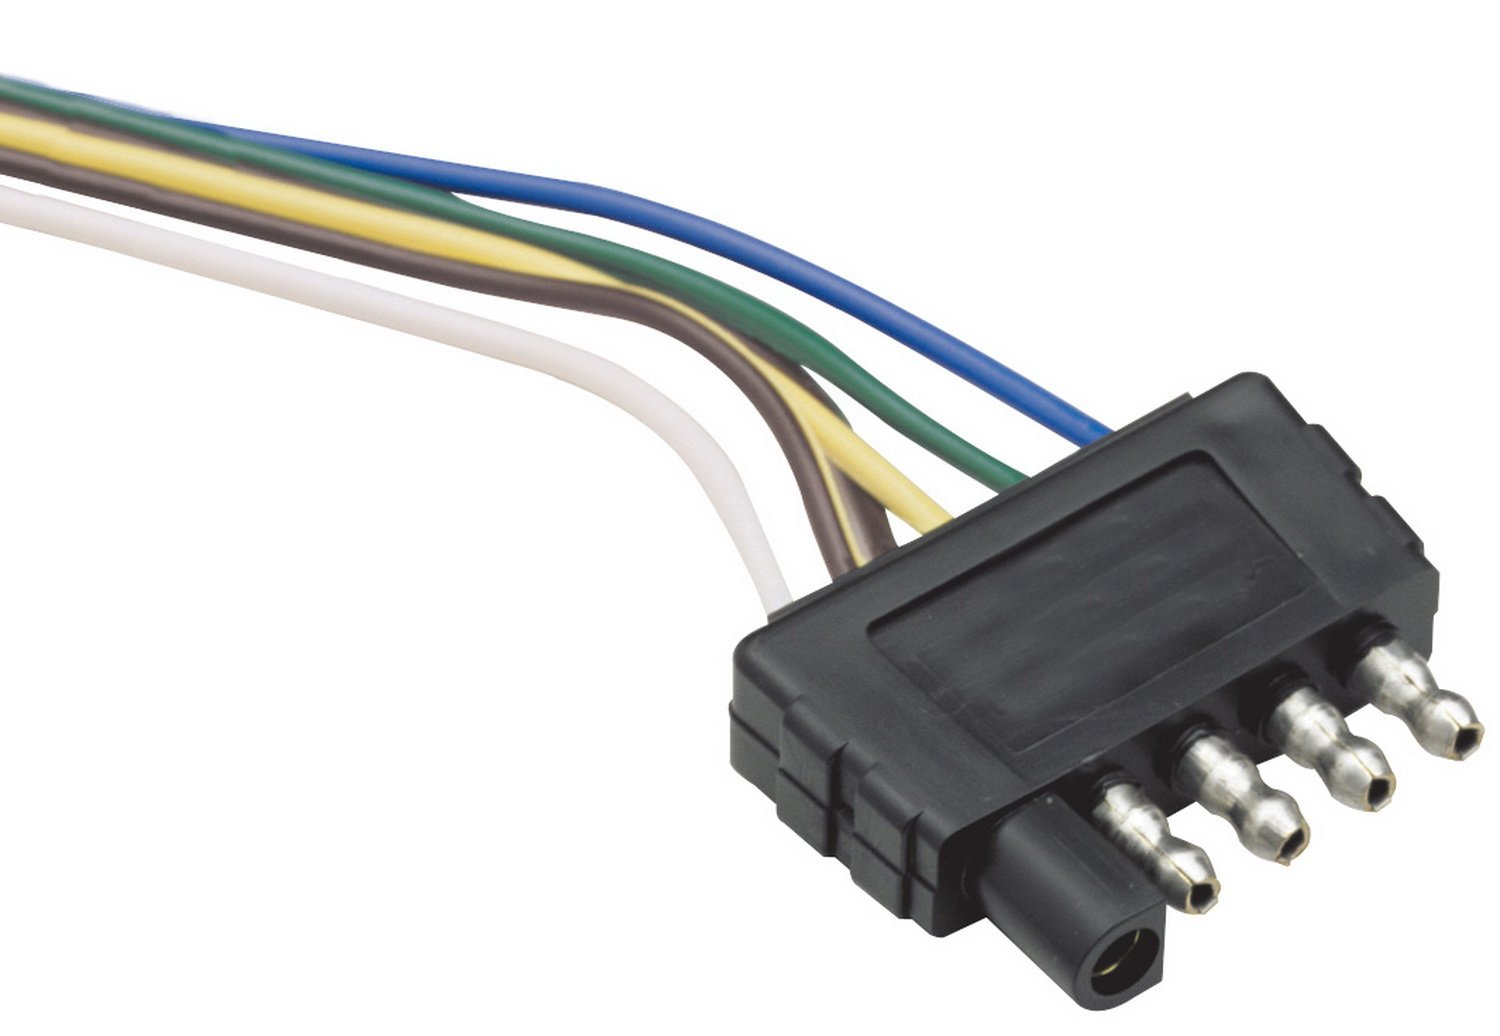 61U8 cIQMQL._SL1500_ amazon com reese towpower 85214 5 way flat connector automotive 5 way flat trailer plug wiring diagram at edmiracle.co